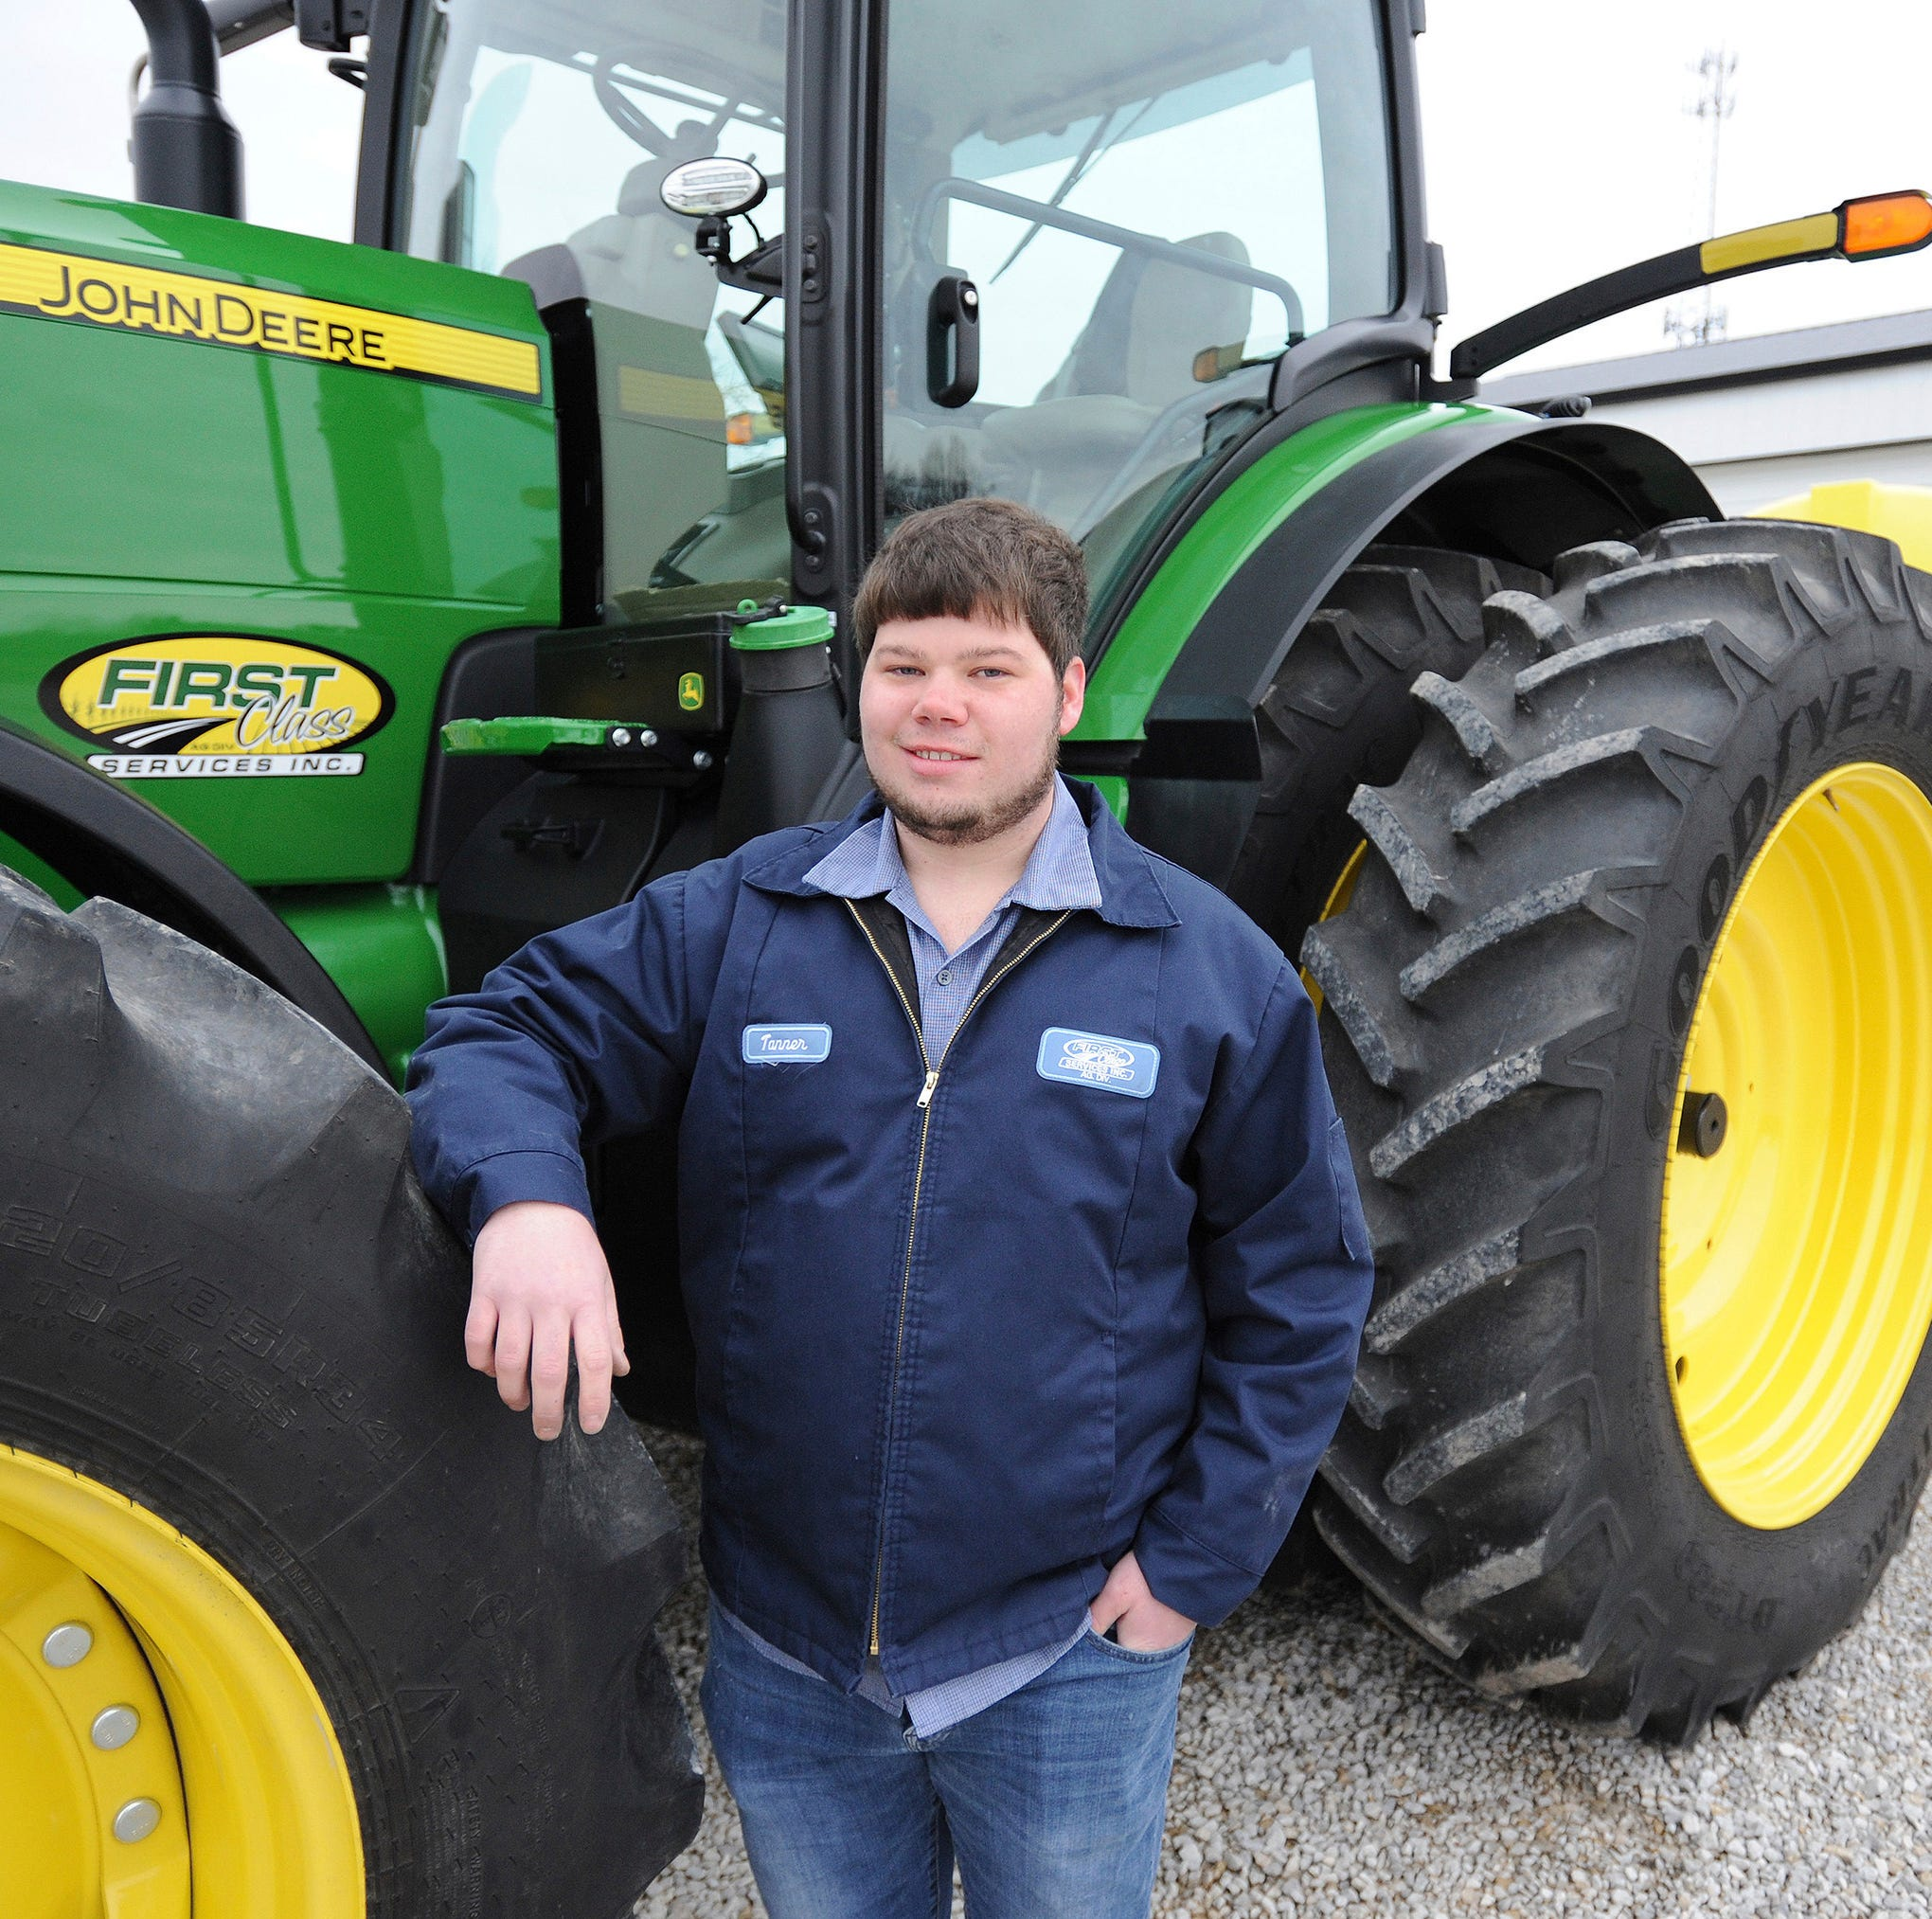 Kentucky farmer brings youth to otherwise aging profession